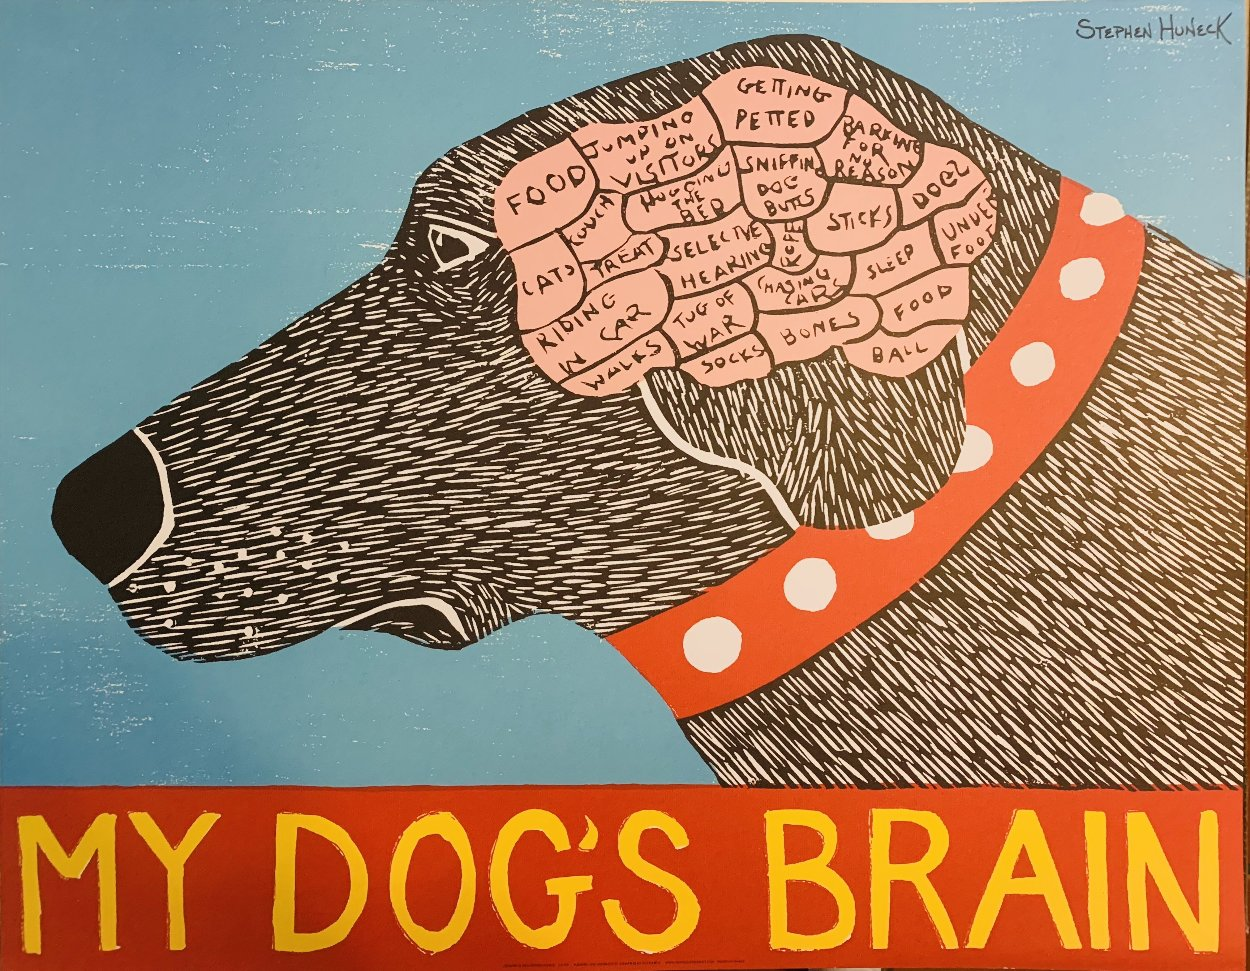 My Dog's Brain, and True Love Set of 2  Limited Edition Print by Stephen Huneck